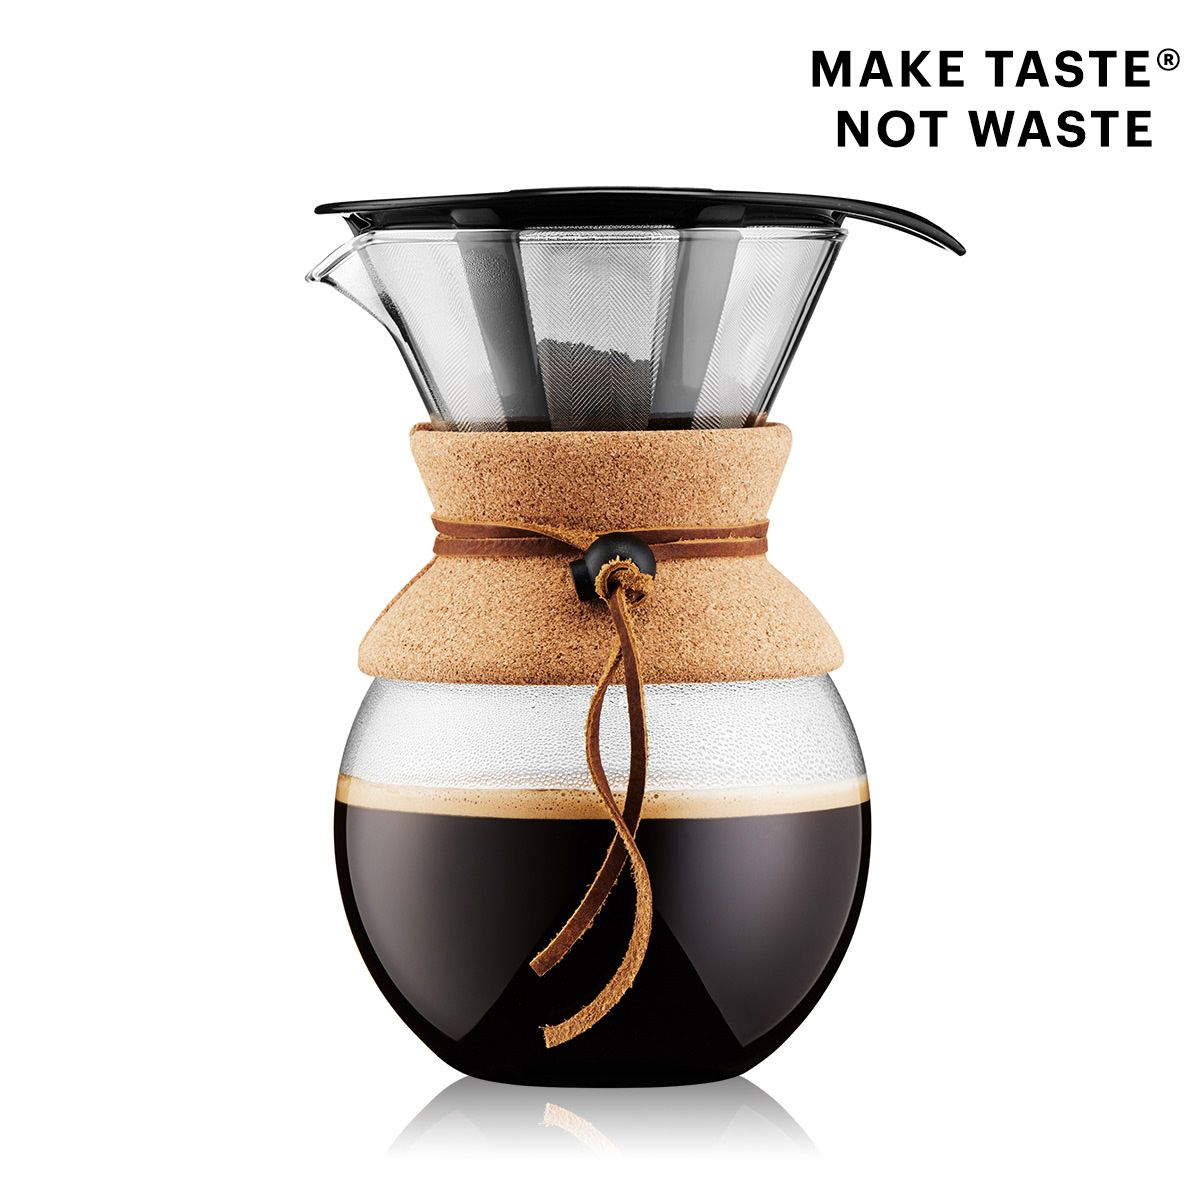 Filter Coffee Maker POUR OVER 1.0 L | BODUM